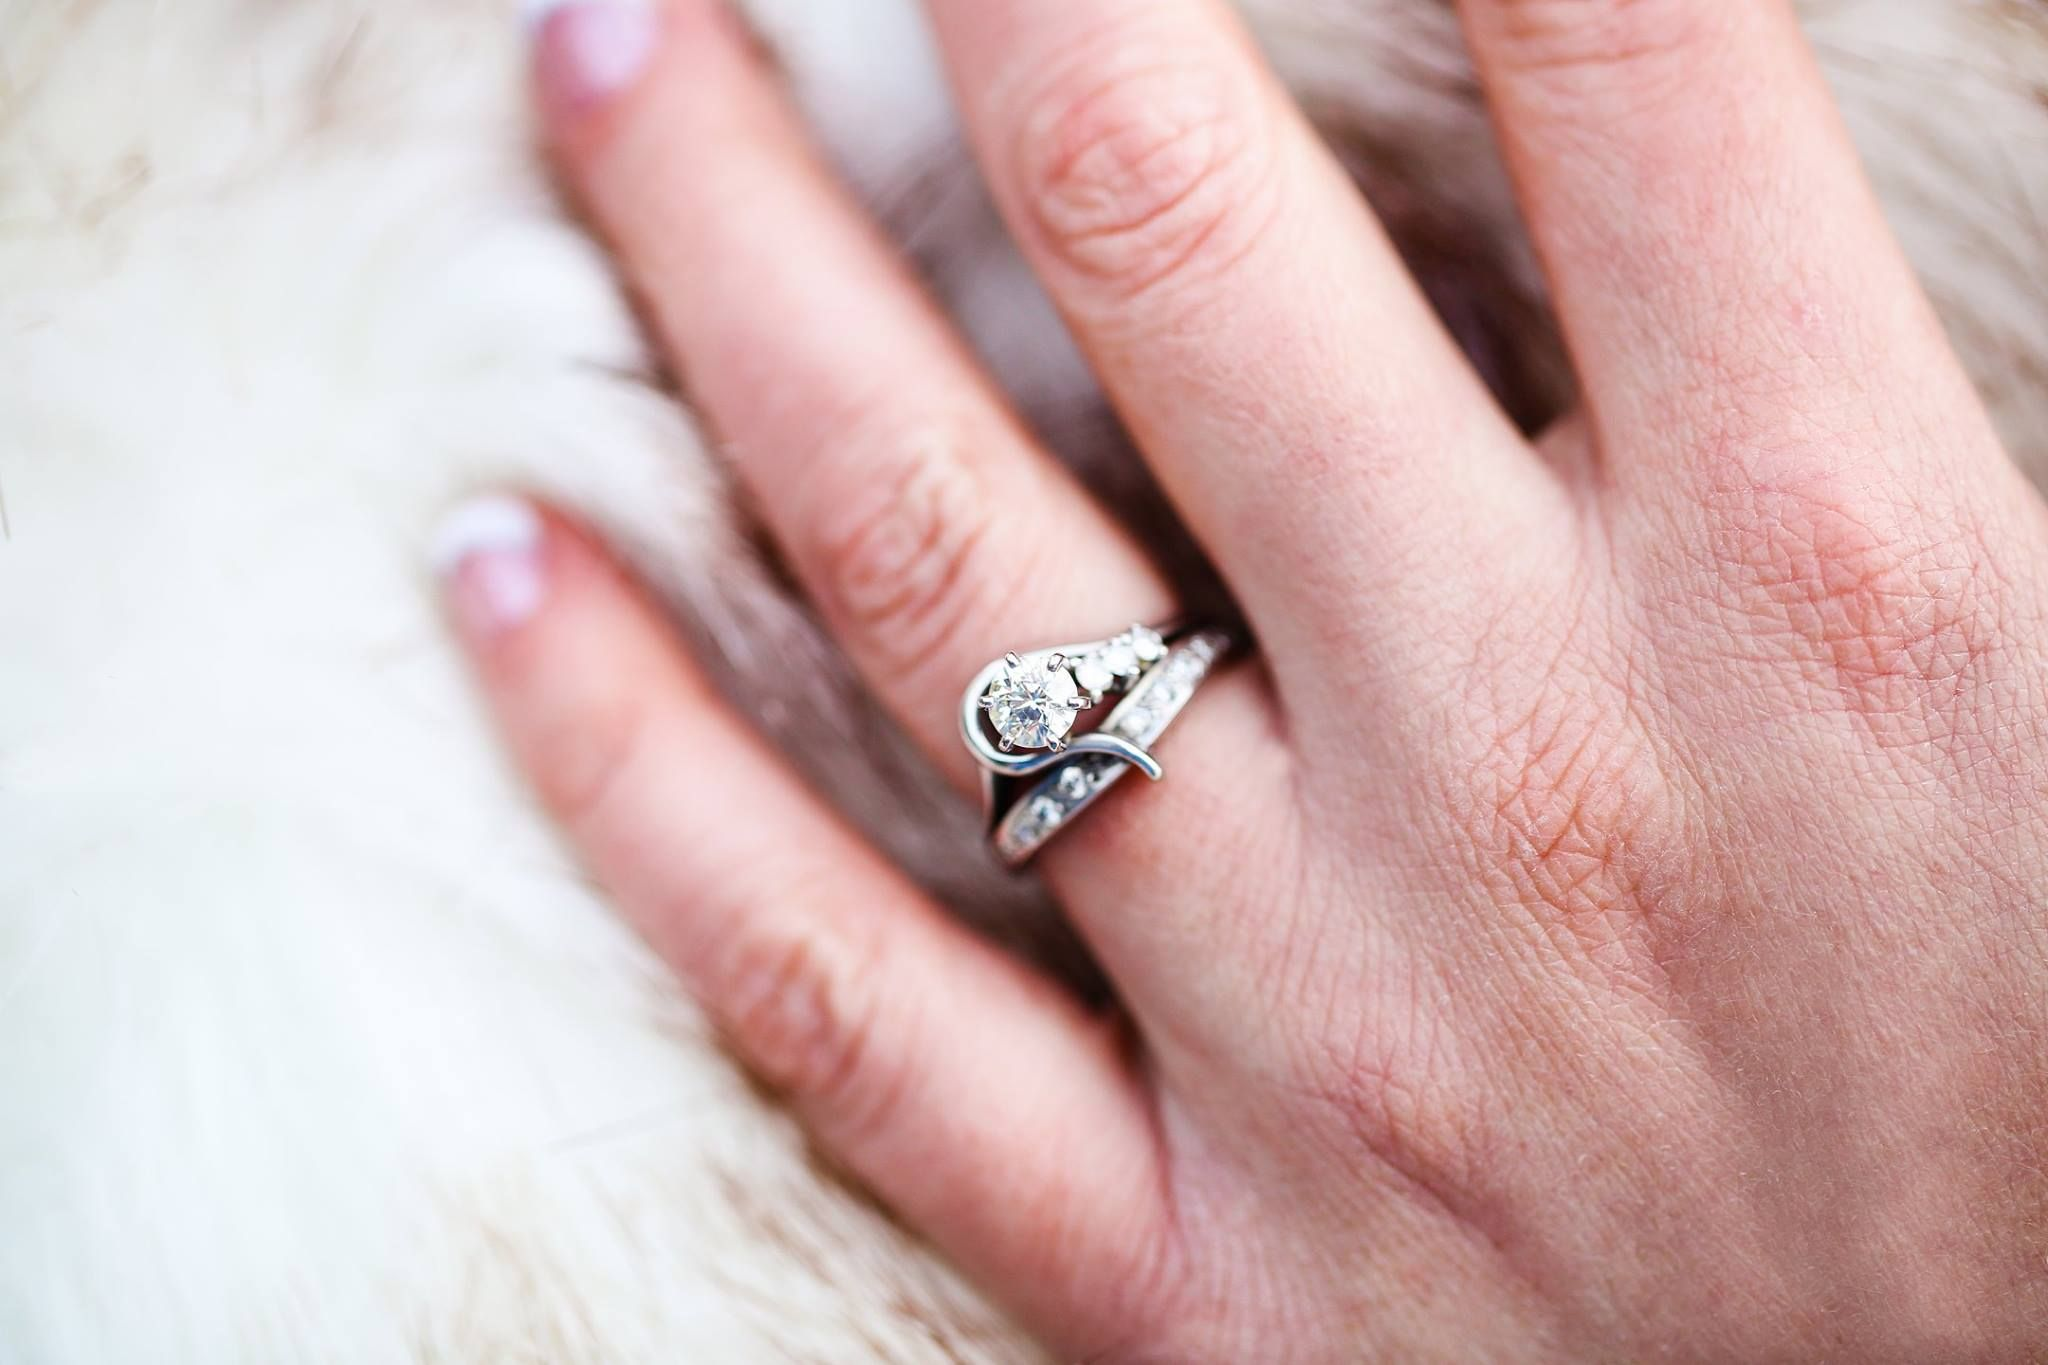 Engagement ring detail shots | wedding ring photo ideas | wedding ...